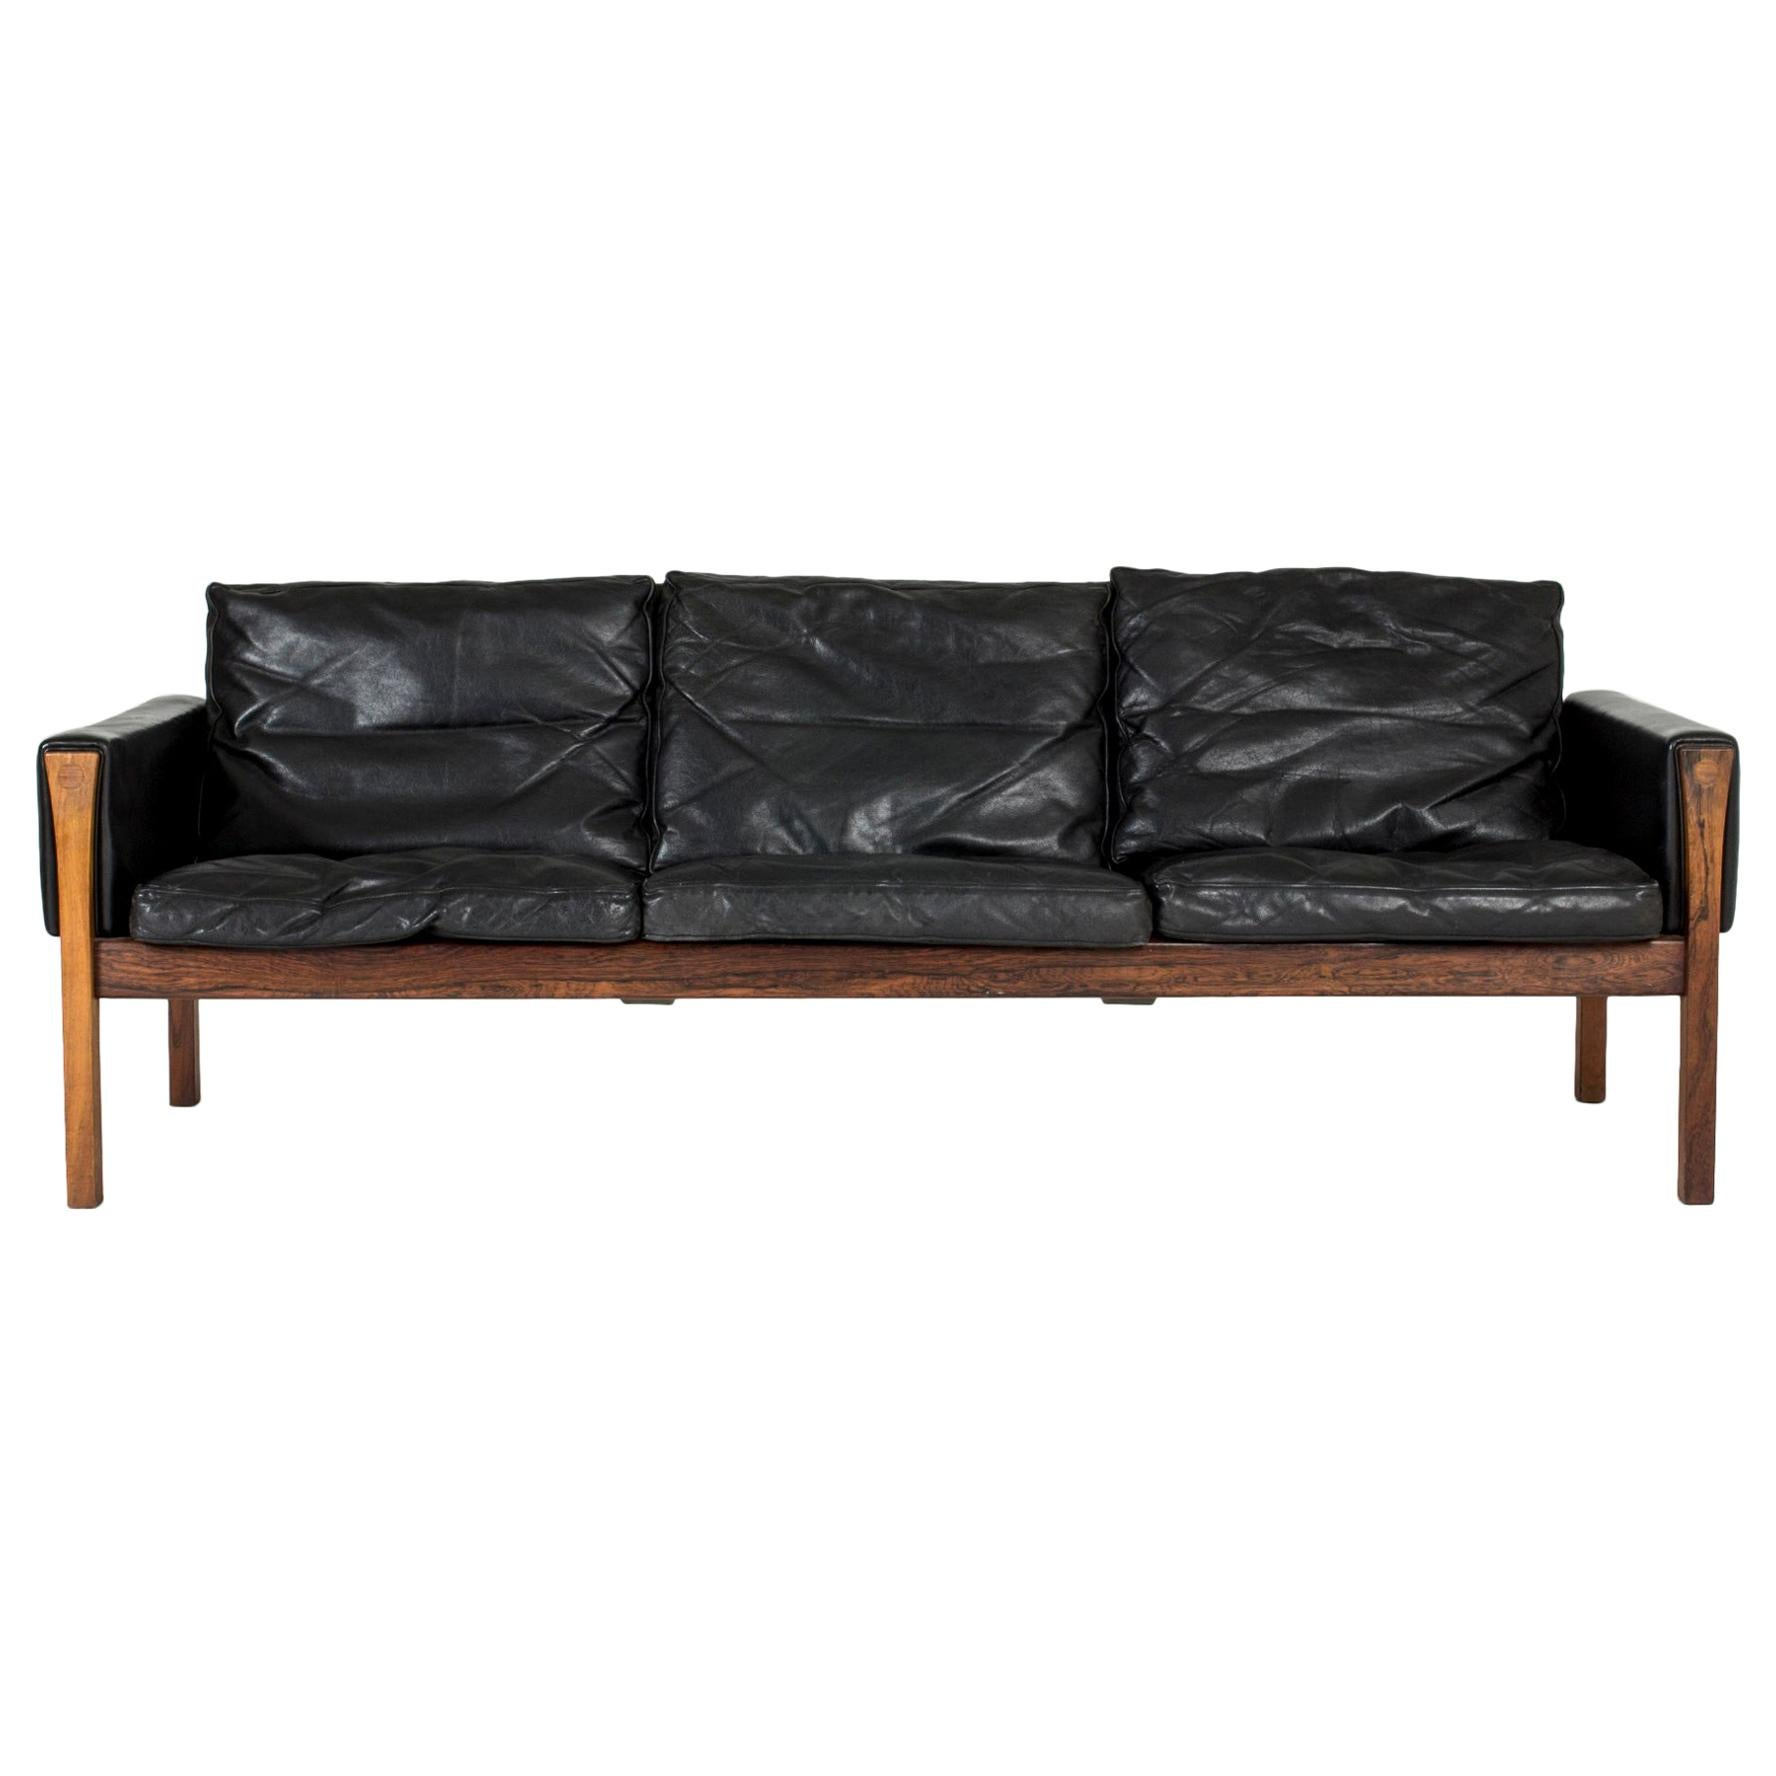 Leather Quot Ch 163 Quot Sofa By Hans J Wegner For Sale At 1stdibs - Sofa Ch